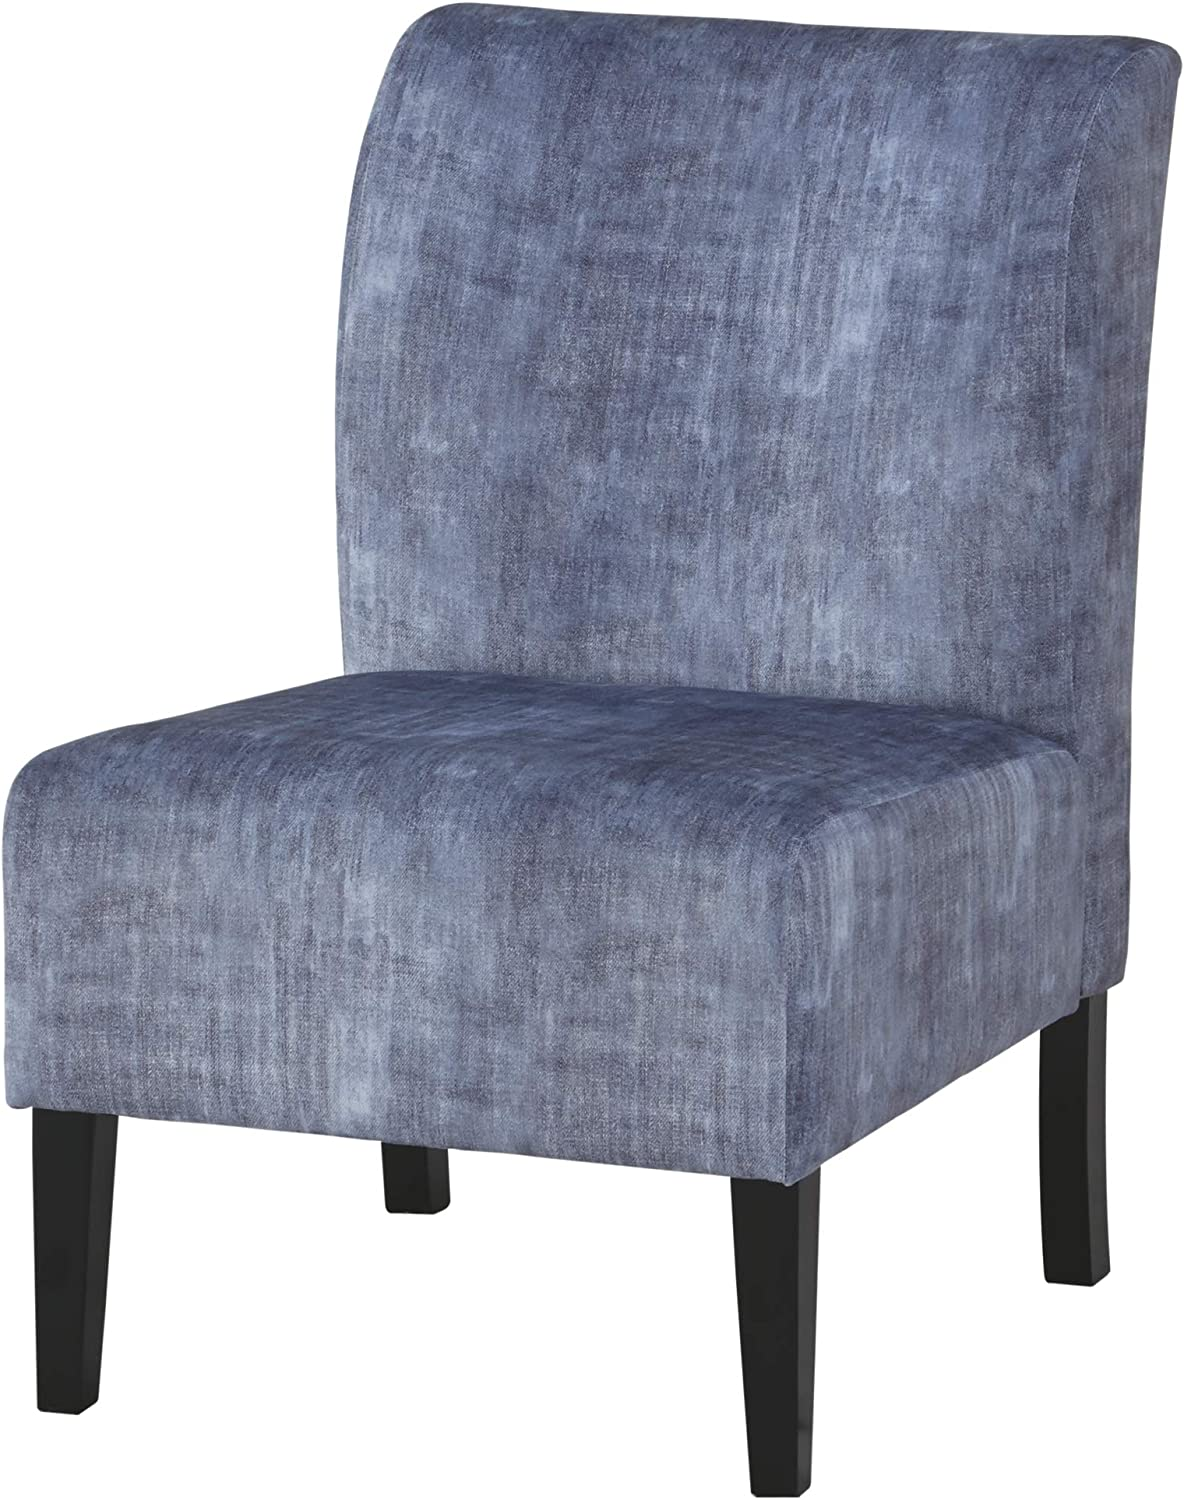 Signature Design by Ashley A3000069 Accent Chair, Triptis Denim